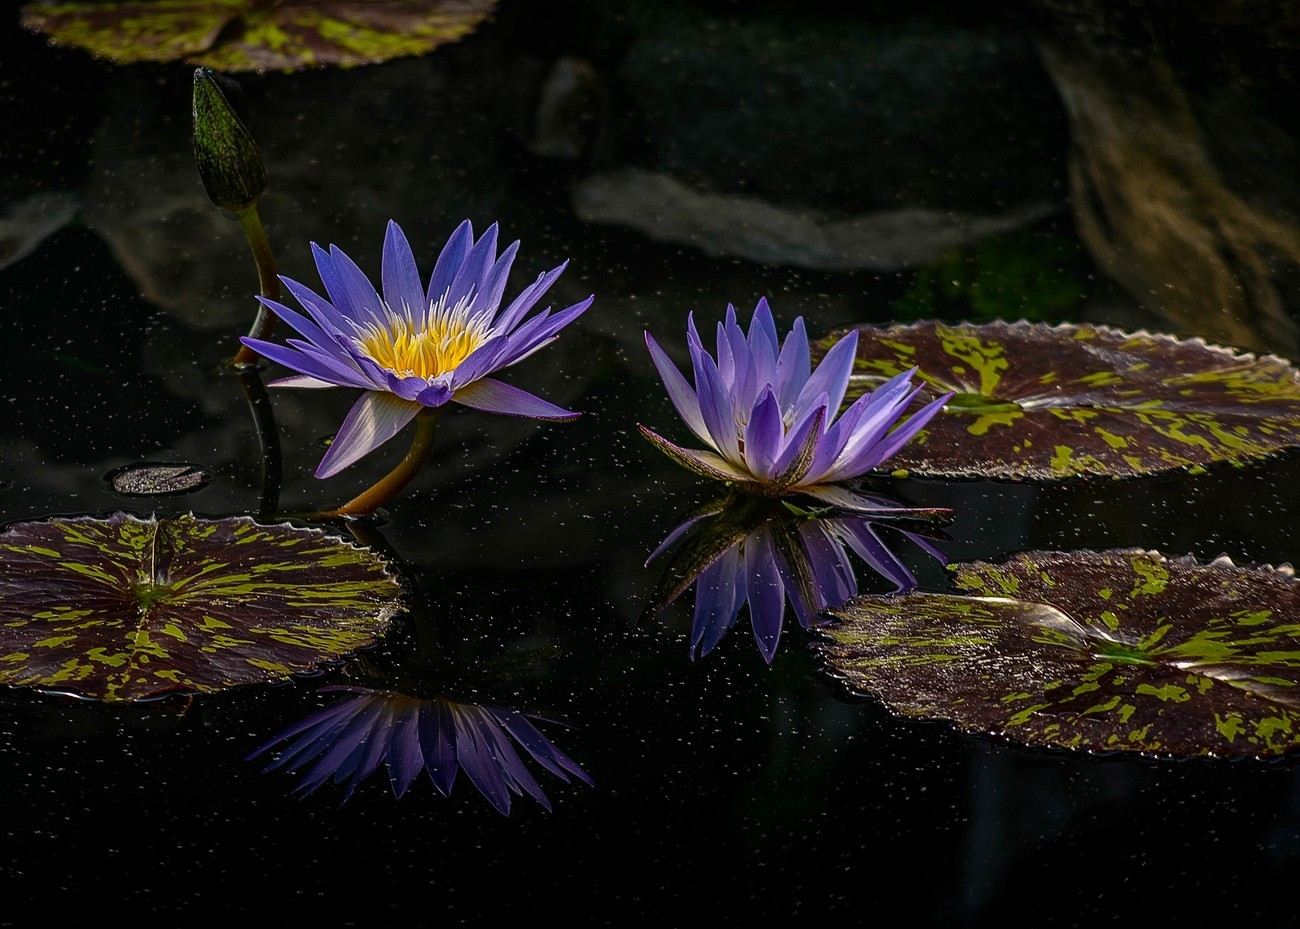 I photographed this lily pond at a pond vendor near Wilsonville, Oregon. The lighting was fantastic since the ponds were covered with a translucent white cover that dispersed the light perfectly. The reflections are so perfect, that it reminded me of a mirror reflection on a glass tabletop.